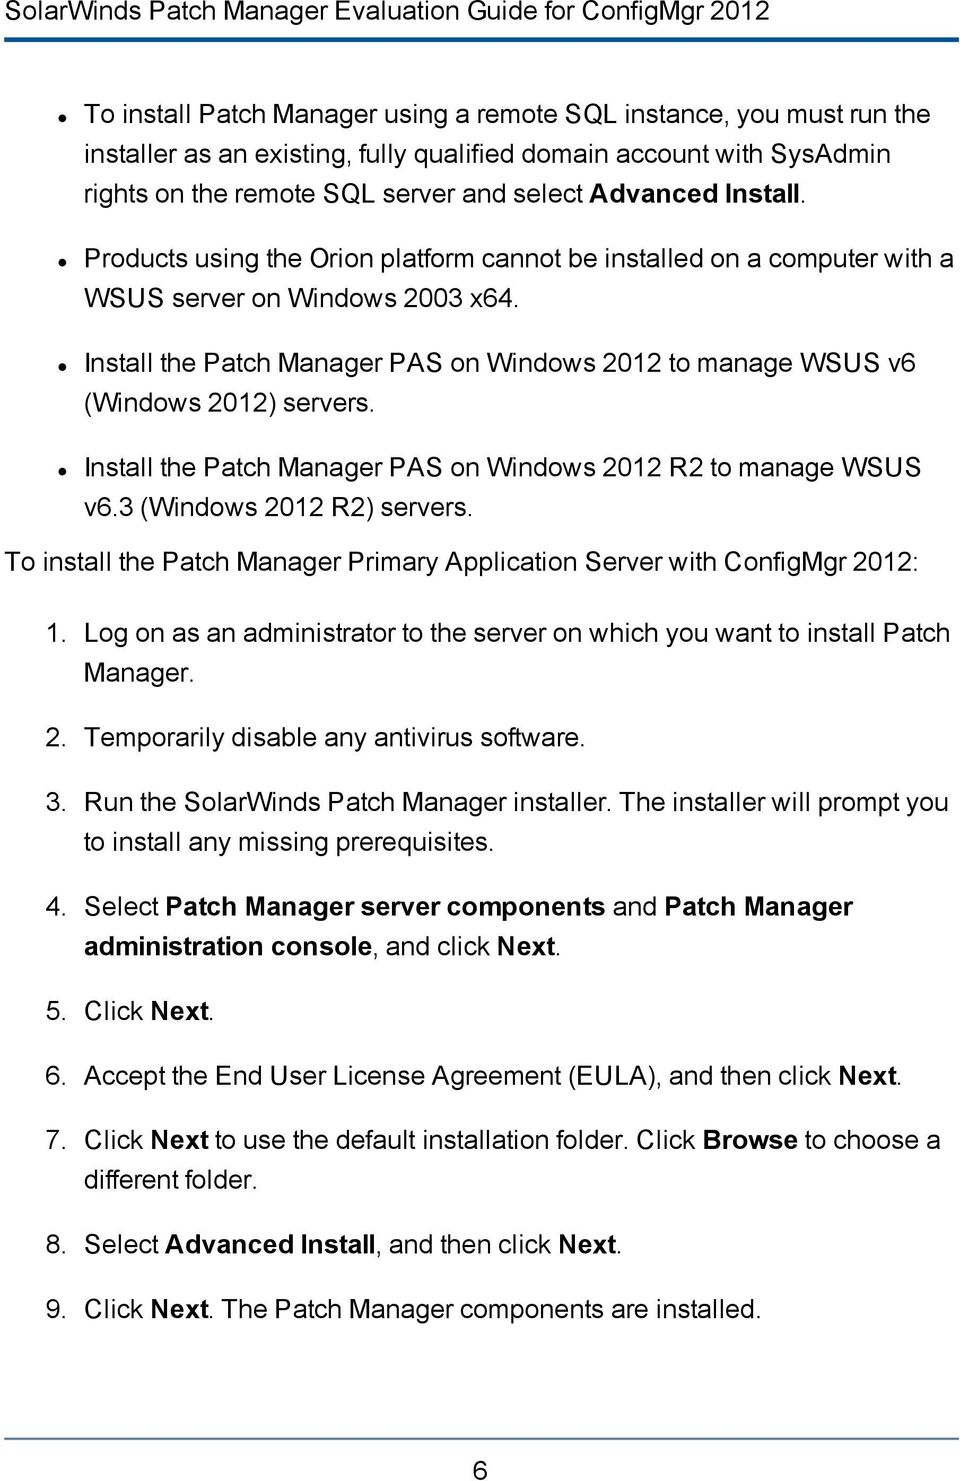 Install the Patch Manager PAS on Windows 2012 to manage WSUS v6 (Windows 2012) servers. Install the Patch Manager PAS on Windows 2012 R2 to manage WSUS v6.3 (Windows 2012 R2) servers.